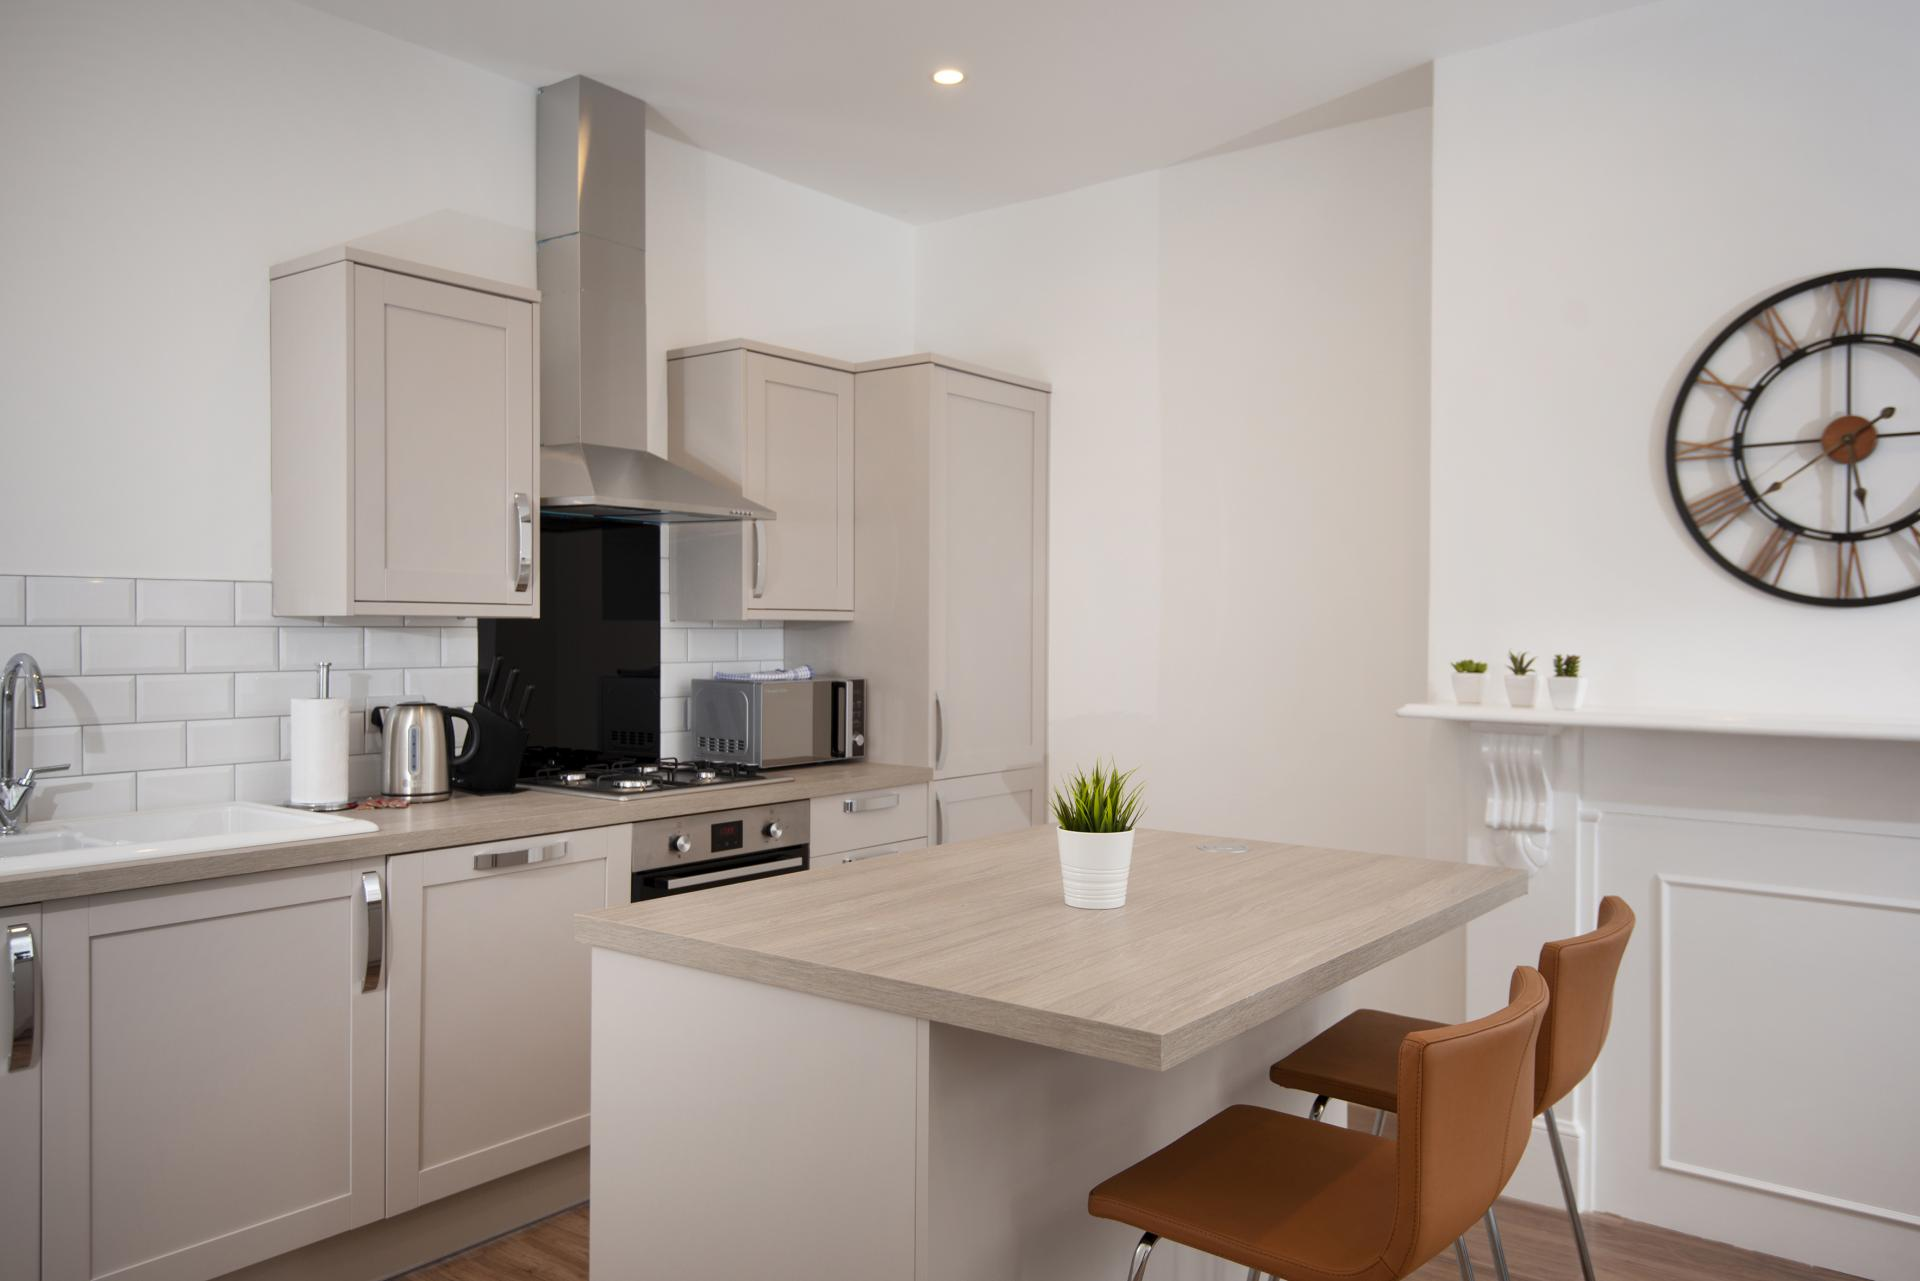 Kitchen at Hereford House Apartments, Southsea, Portsmouth